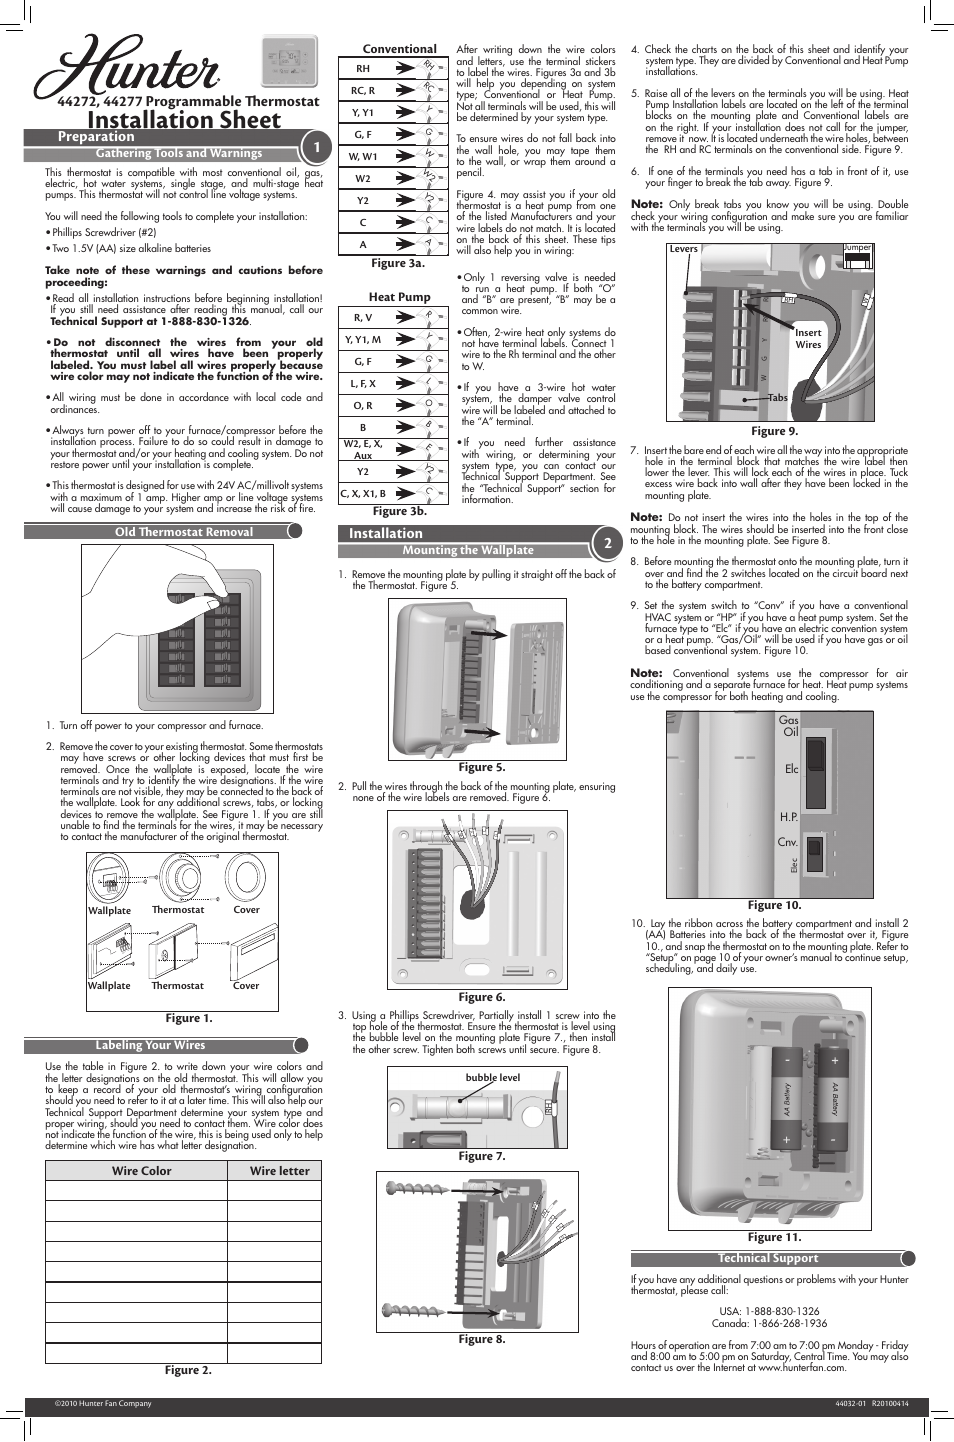 hunter fan 44277 page1 hunter thermostat wiring diagram 44272 efcaviation com hunter thermostat 44665 wiring diagram at mifinder.co